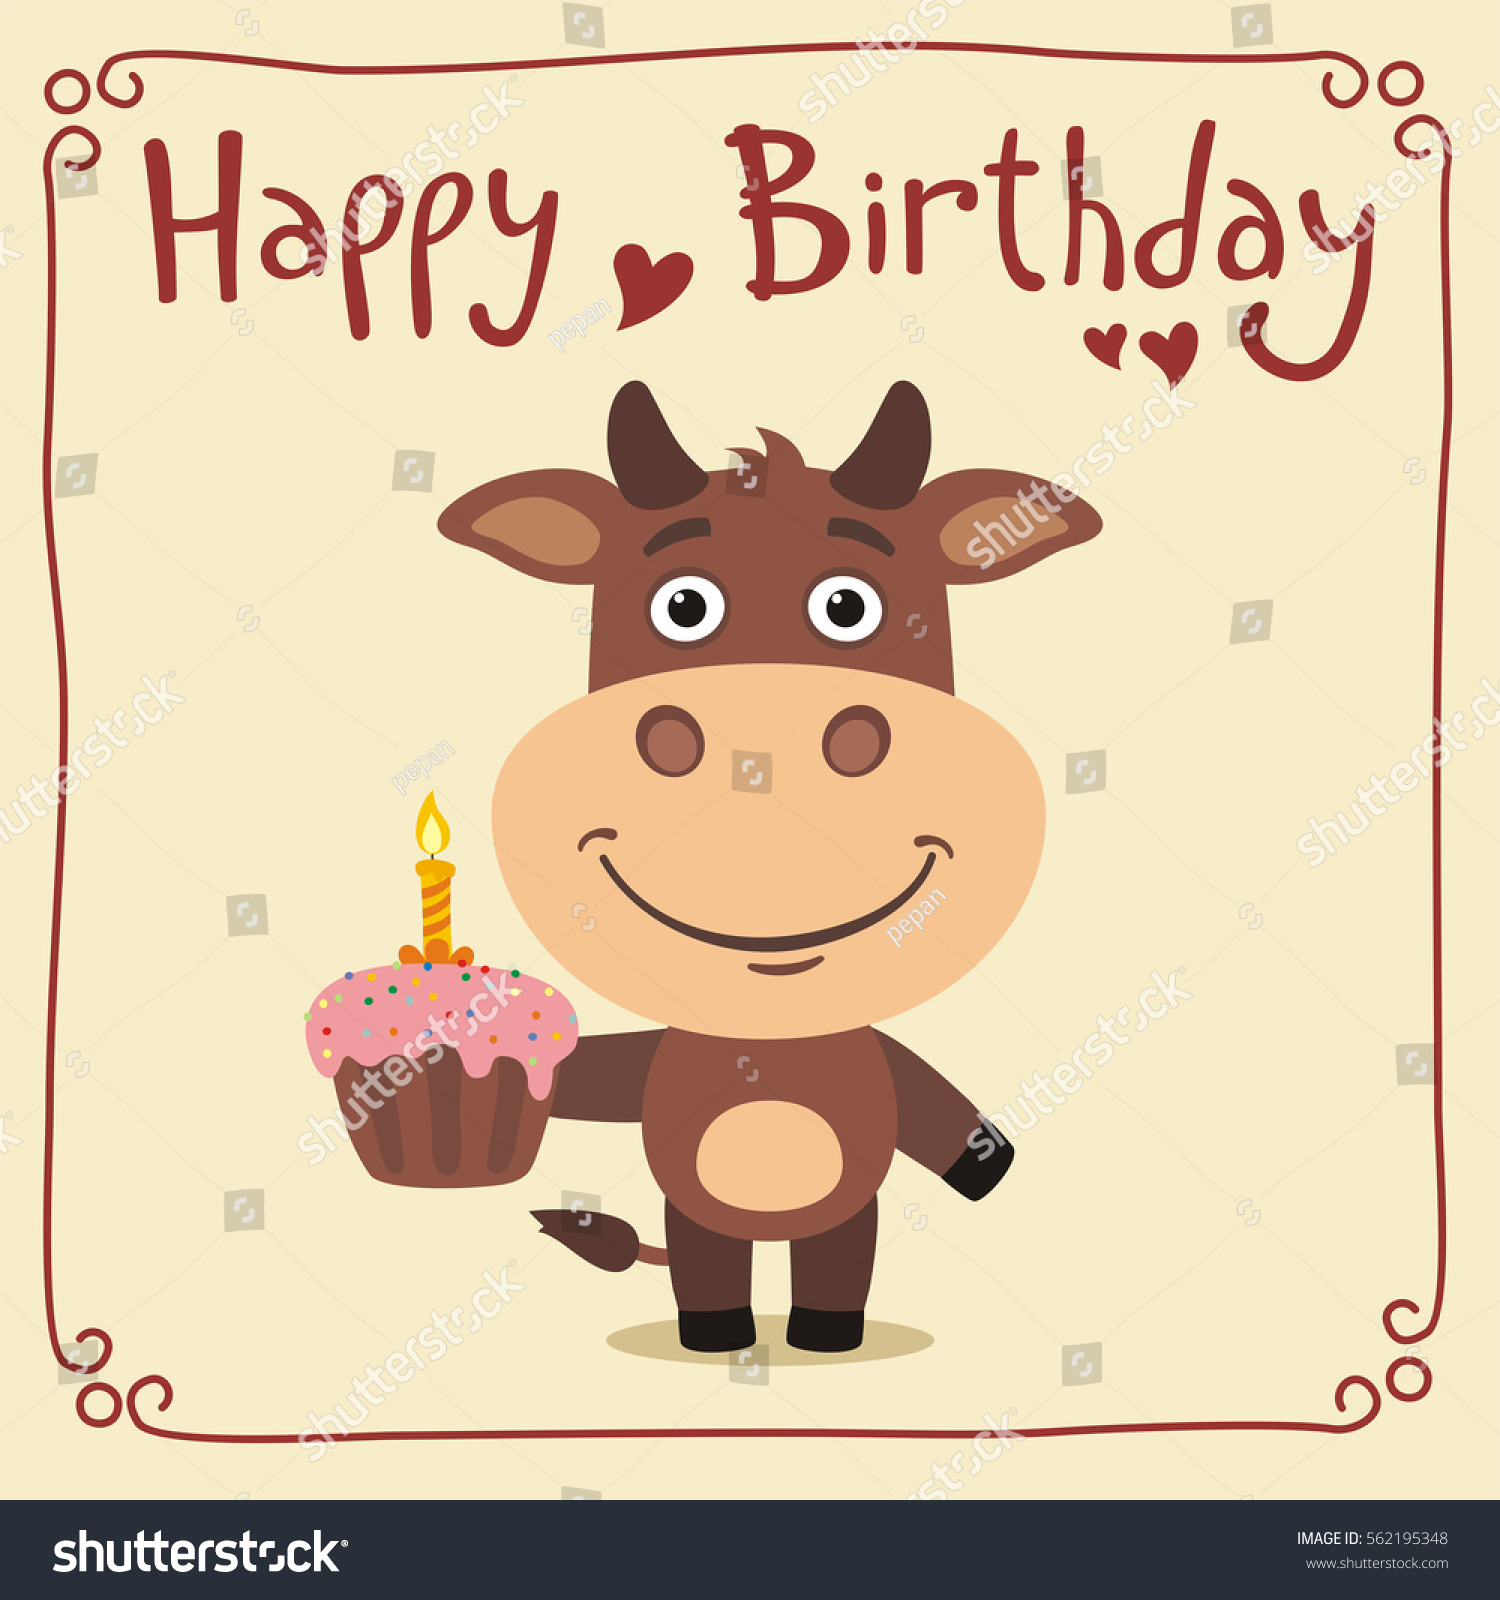 Happy Birthday Funny Cow Cake Greeting Stock Vector Royalty Free